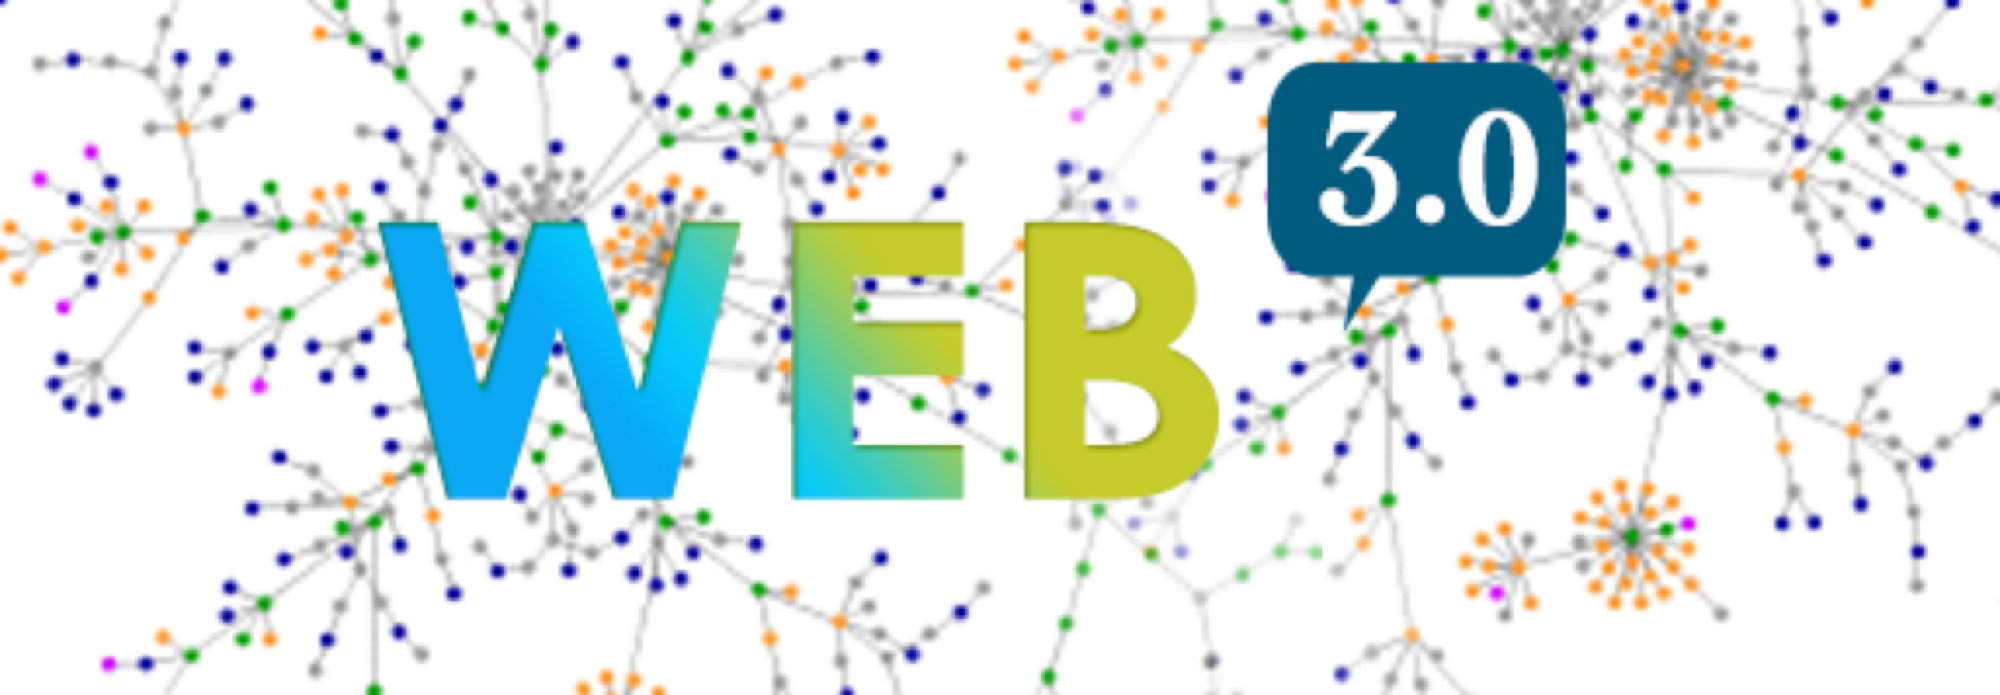 Web 3.0 is coming - Decentralization of the web